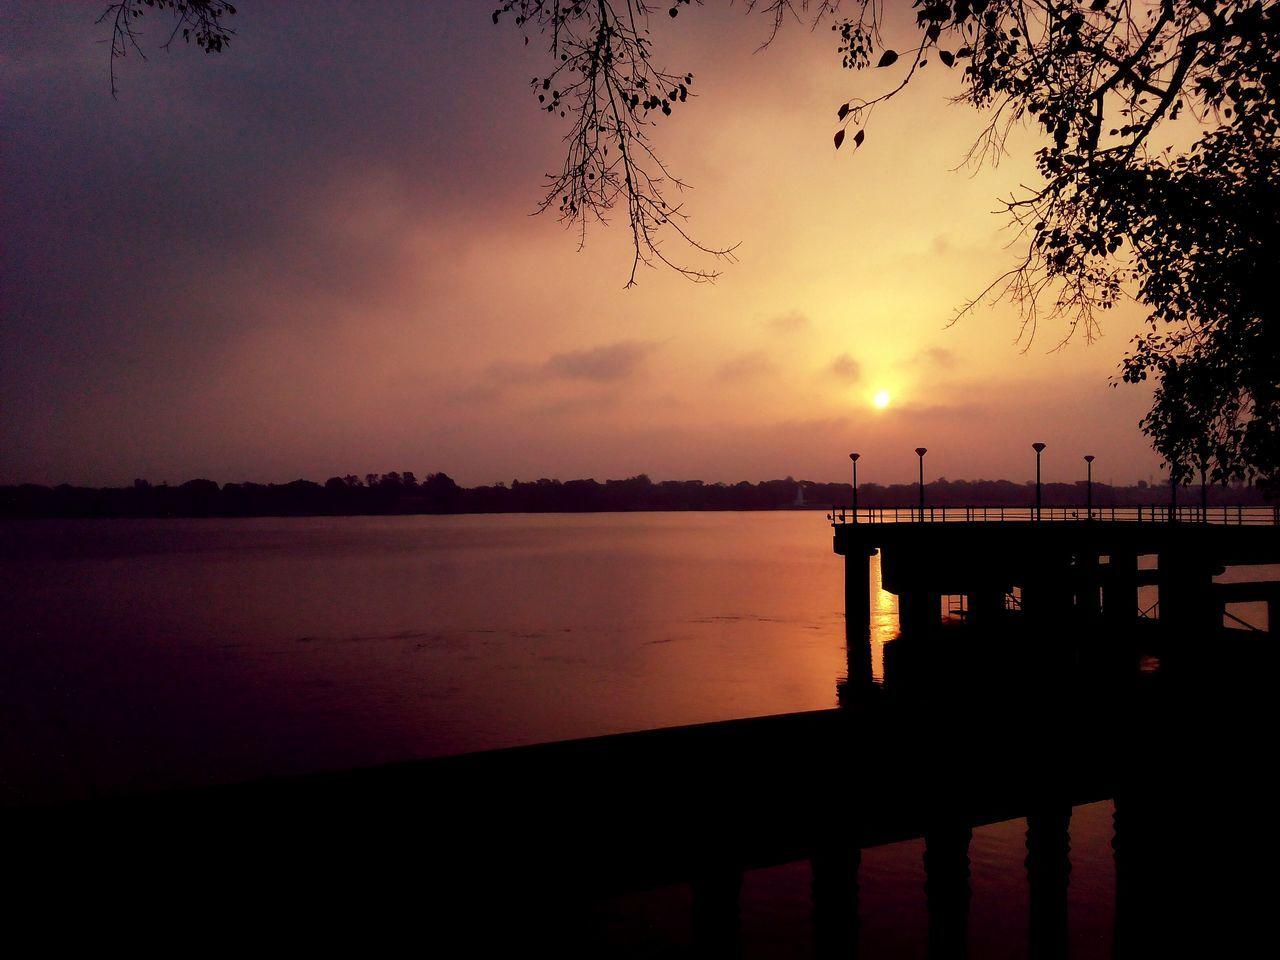 sunset, water, silhouette, sky, tranquil scene, beauty in nature, scenics, sea, pier, nature, tranquility, reflection, idyllic, jetty, outdoors, no people, cloud - sky, travel destinations, built structure, horizon over water, tree, day